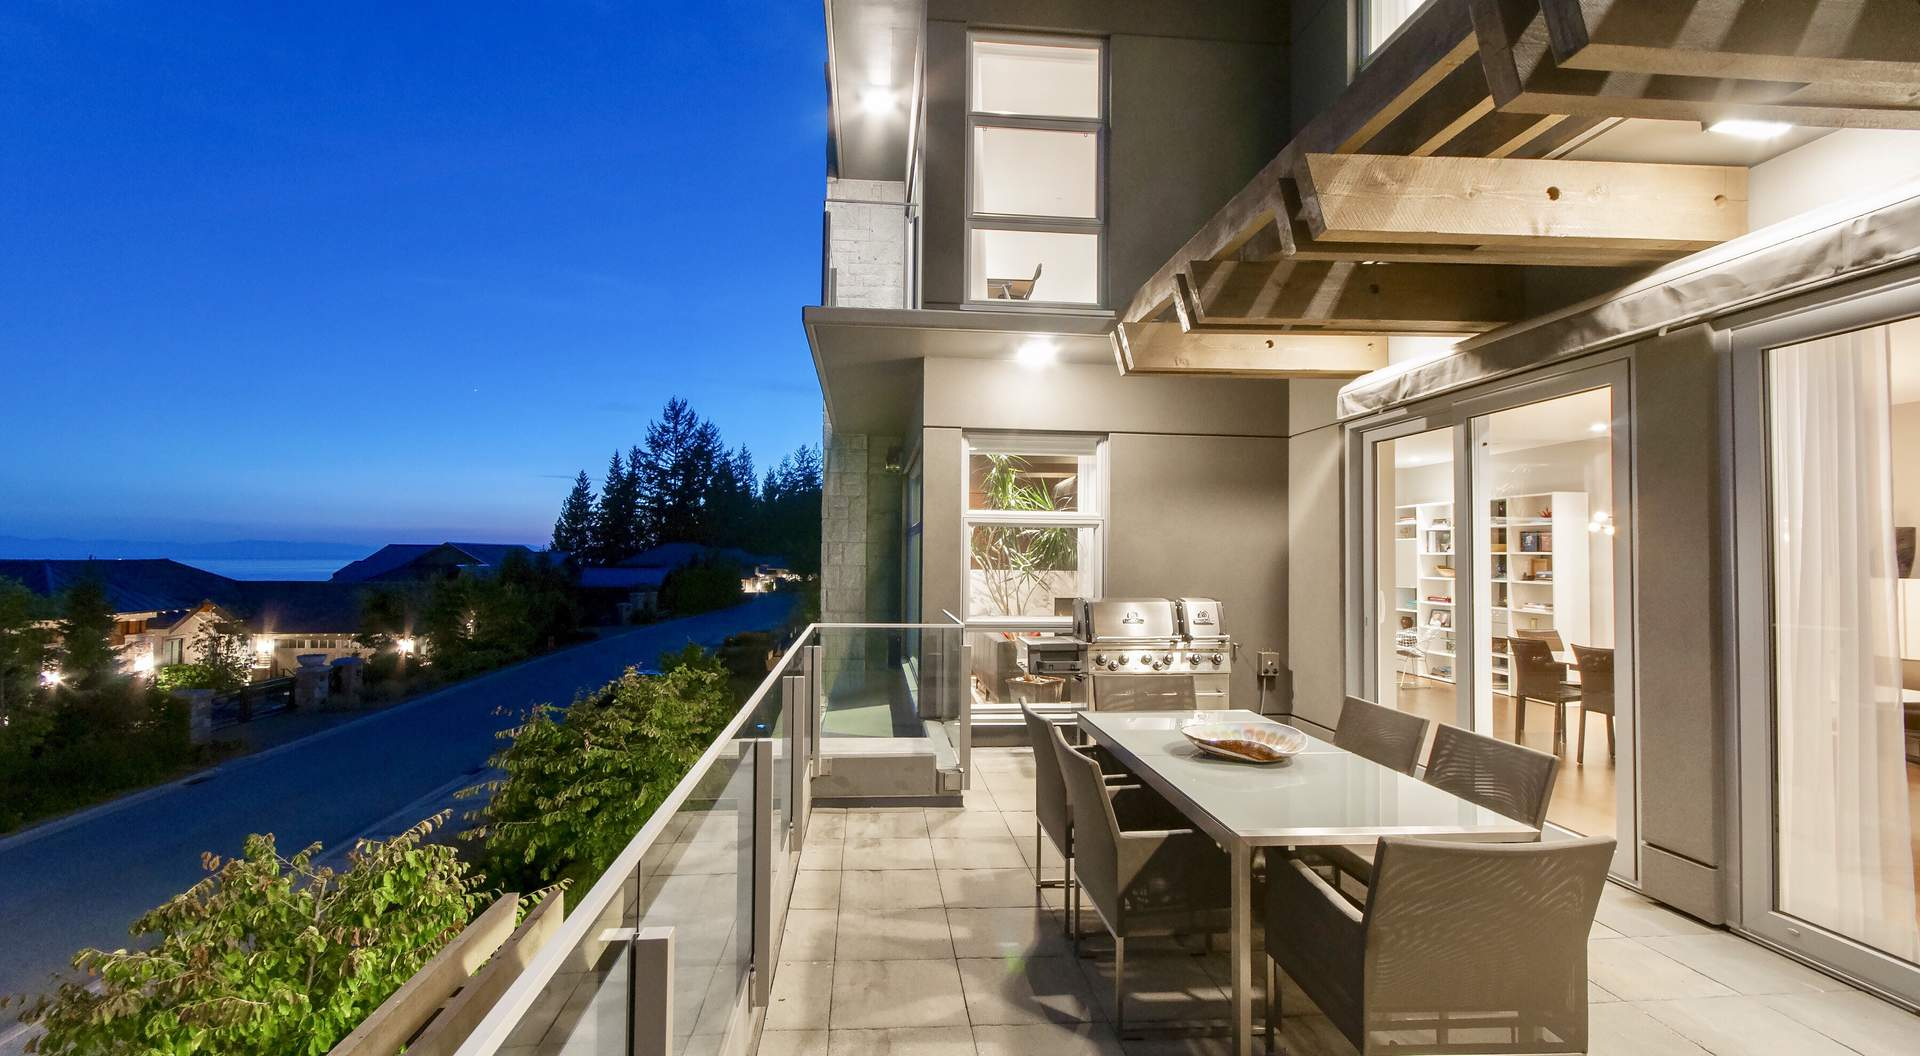 modern home builder - open balcony with stone tile floors, glass rails, exposed beams, stucco finish